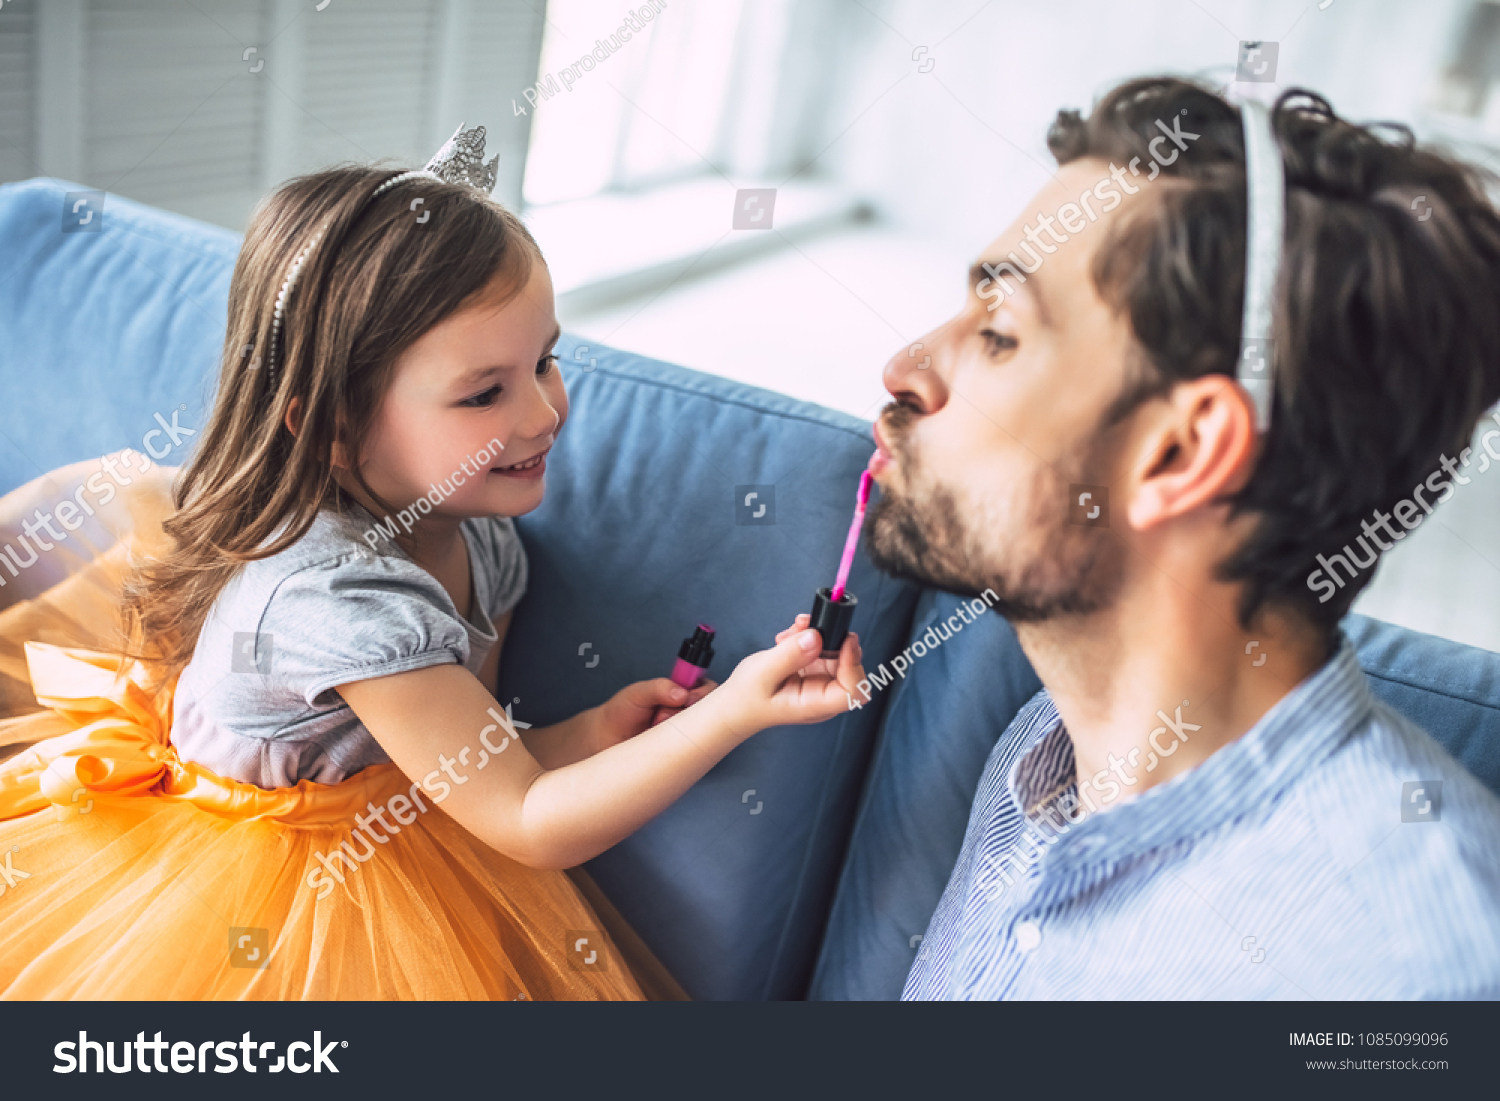 Consider, that Very young little girl loves daddy commit error